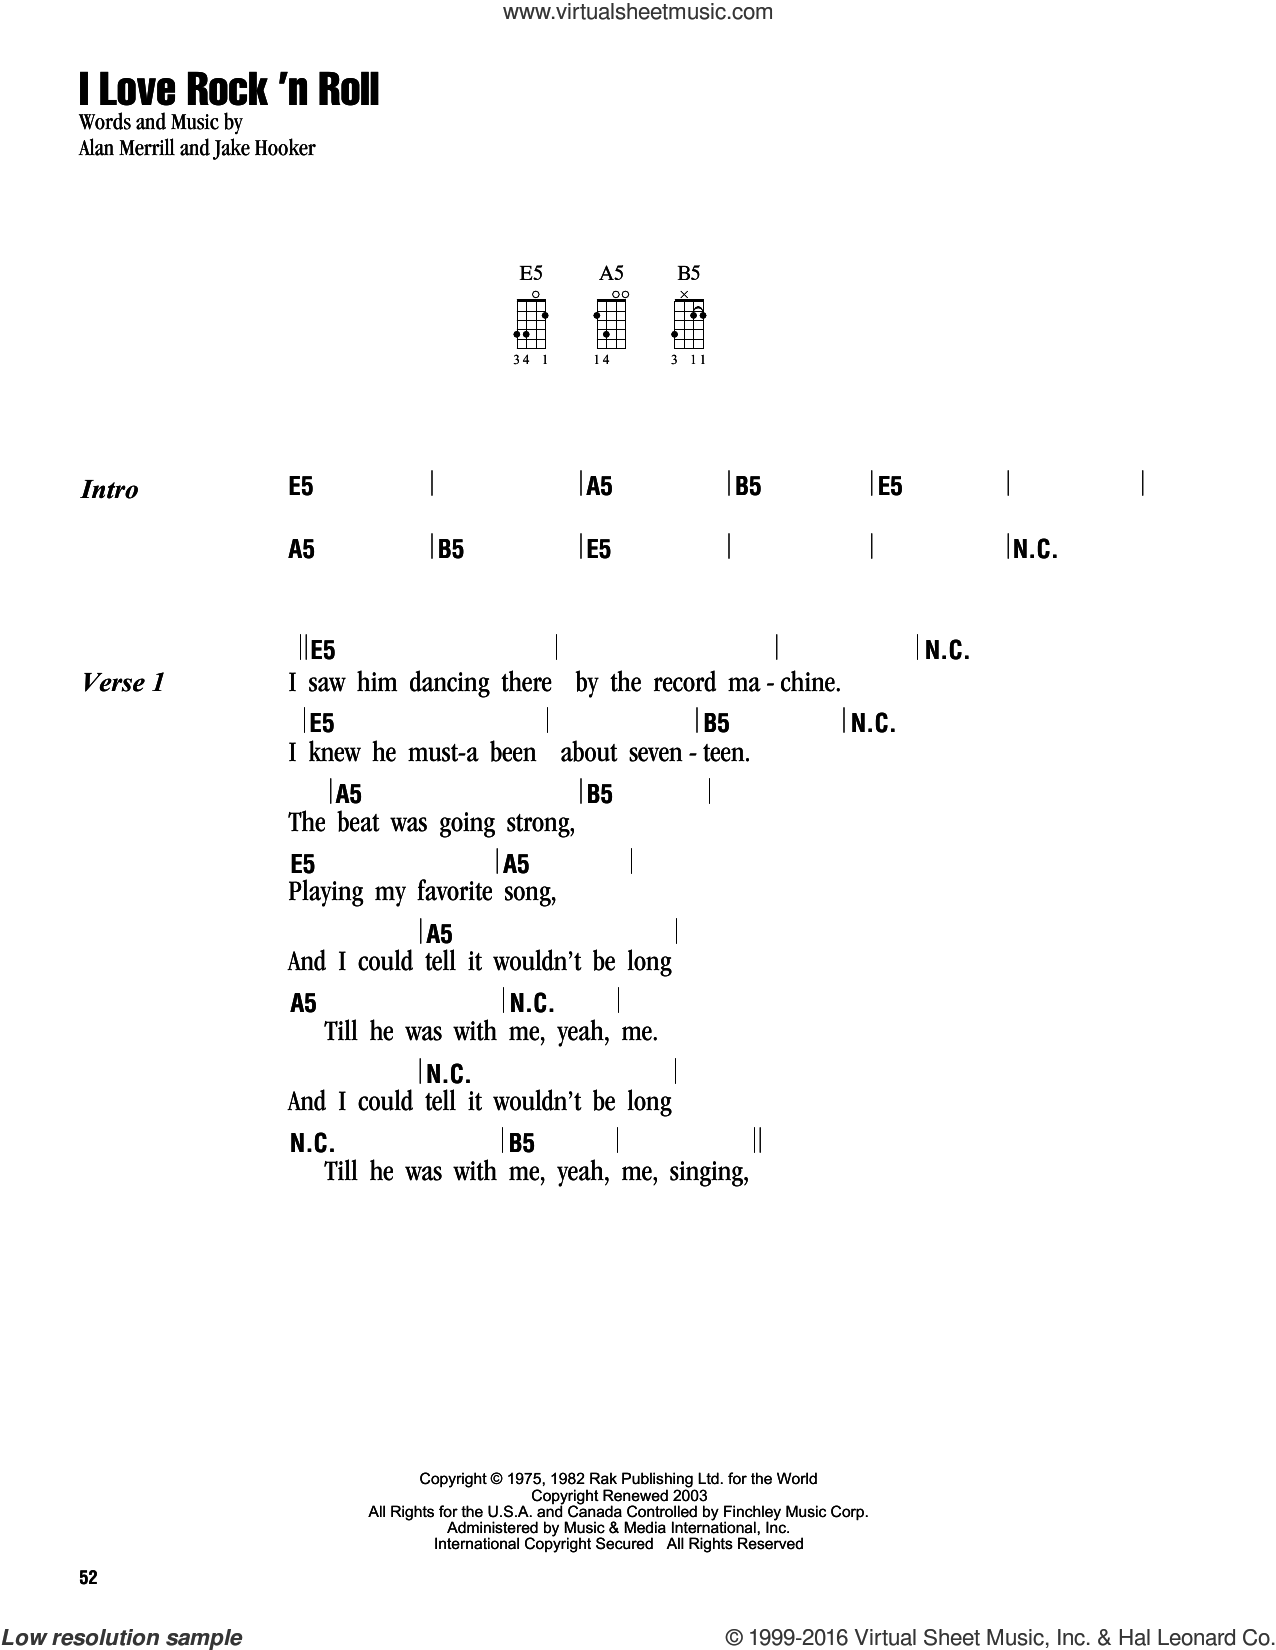 I Love Rock 'N Roll sheet music for ukulele (chords) by Joan Jett & The Blackhearts, Alan Merrill and Jake Hooker, intermediate skill level